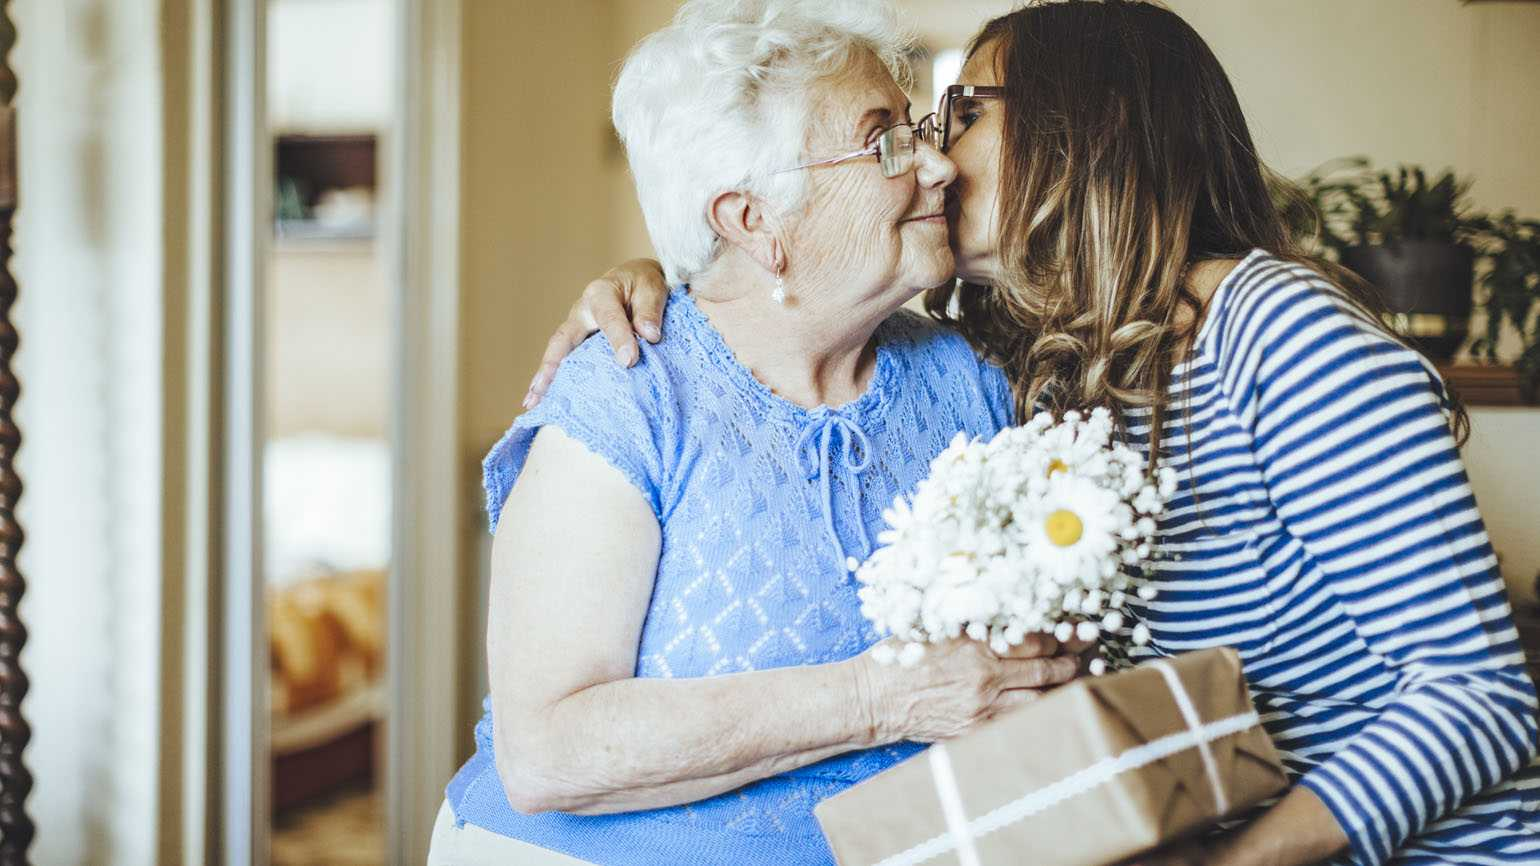 Senior woman is celebrating a joyful Mother's day moment with her daughter; Getty Images